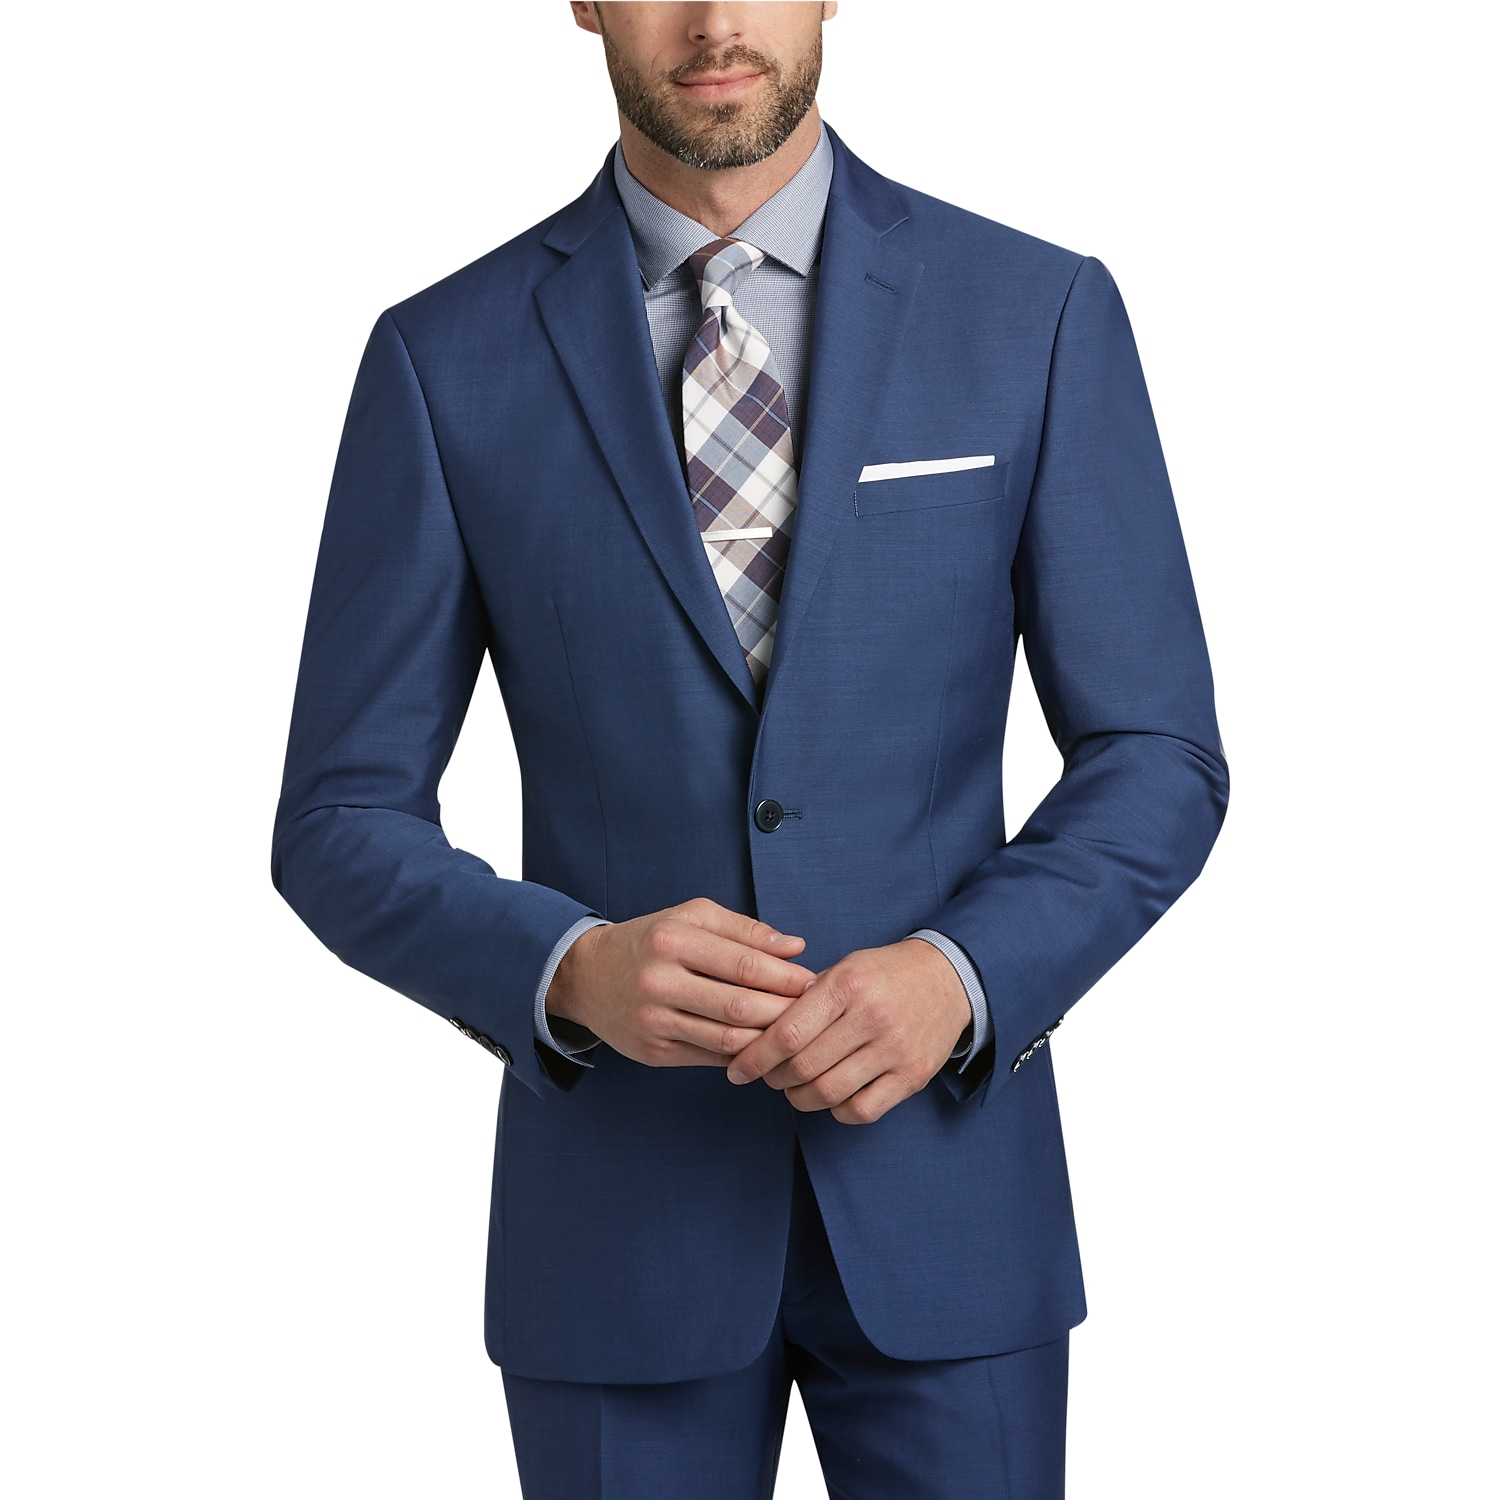 Extreme Slim Fit Suits & Skinny Suits | Men\'s Wearhouse